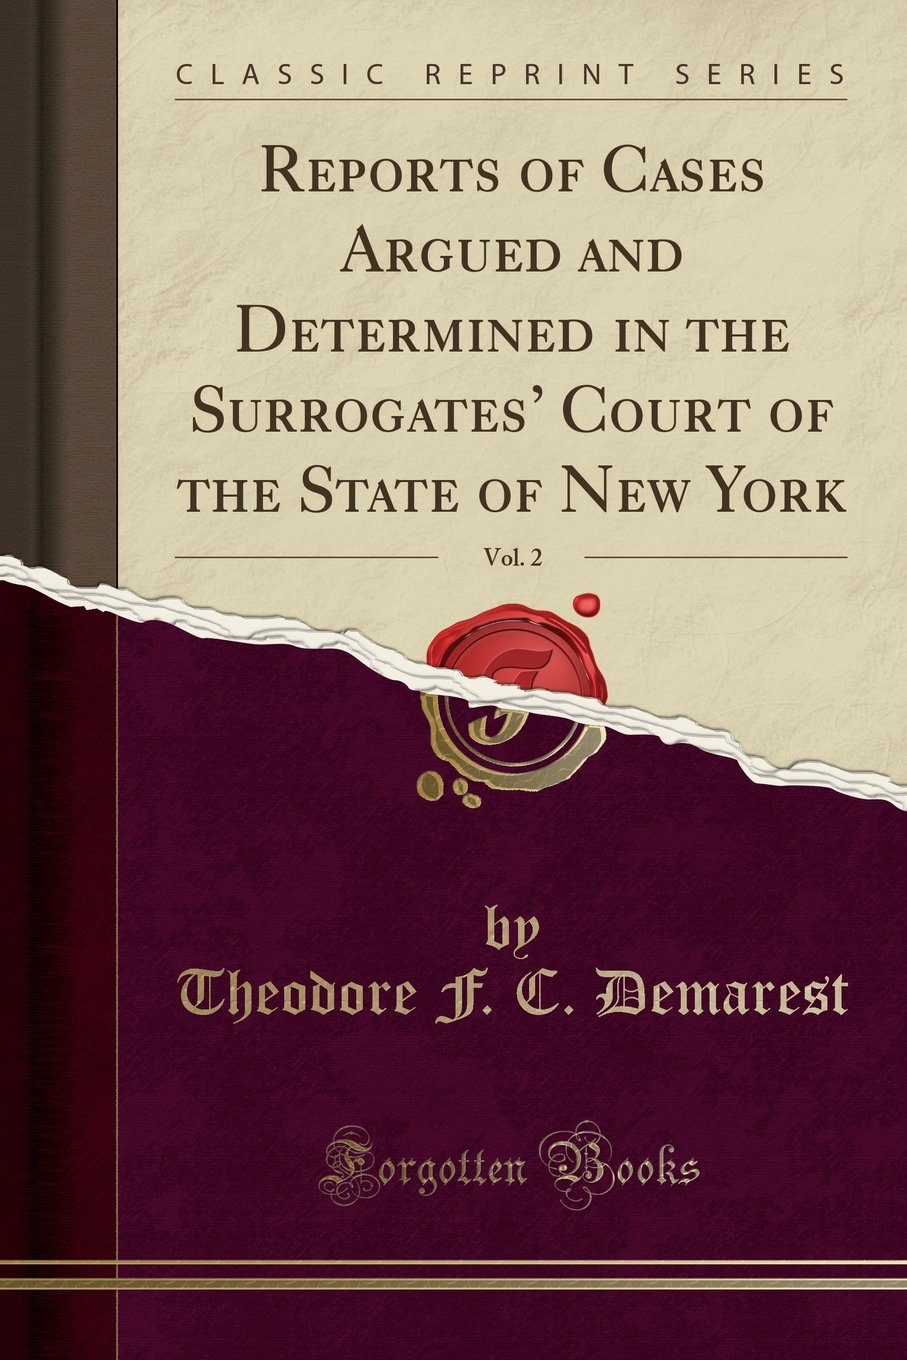 Reports of Cases Argued and Determined in the Surrogates' Court of the State of New York, Vol. 2 (Classic Reprint) ebook